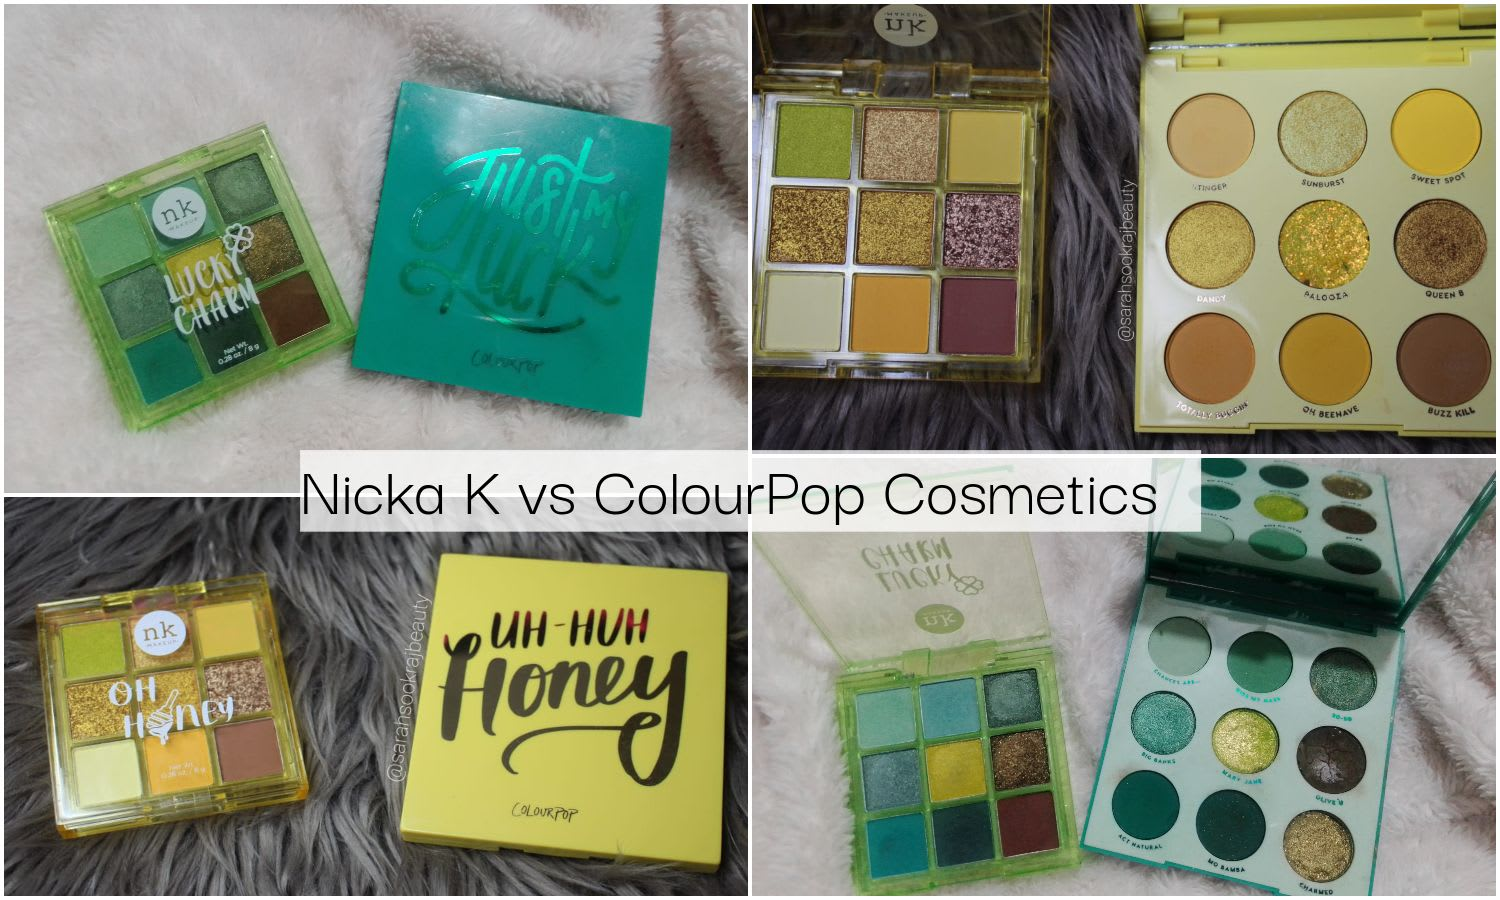 Beauty on a Budget | Nicka K NY Vs ColourPop Cosmetics Review